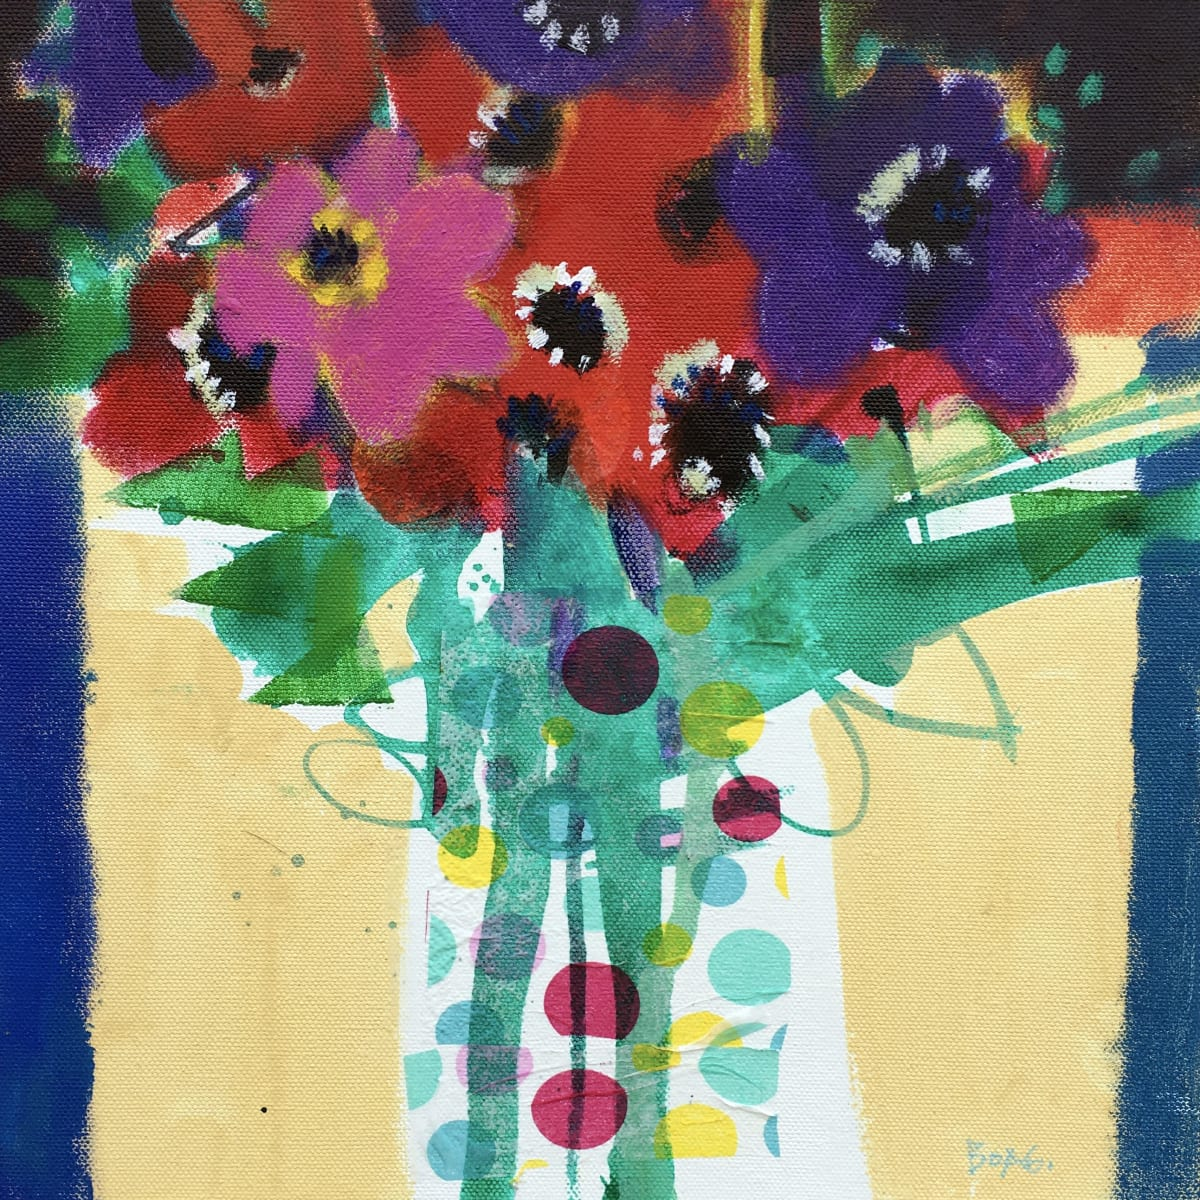 Flowers and polka dots by francis boag